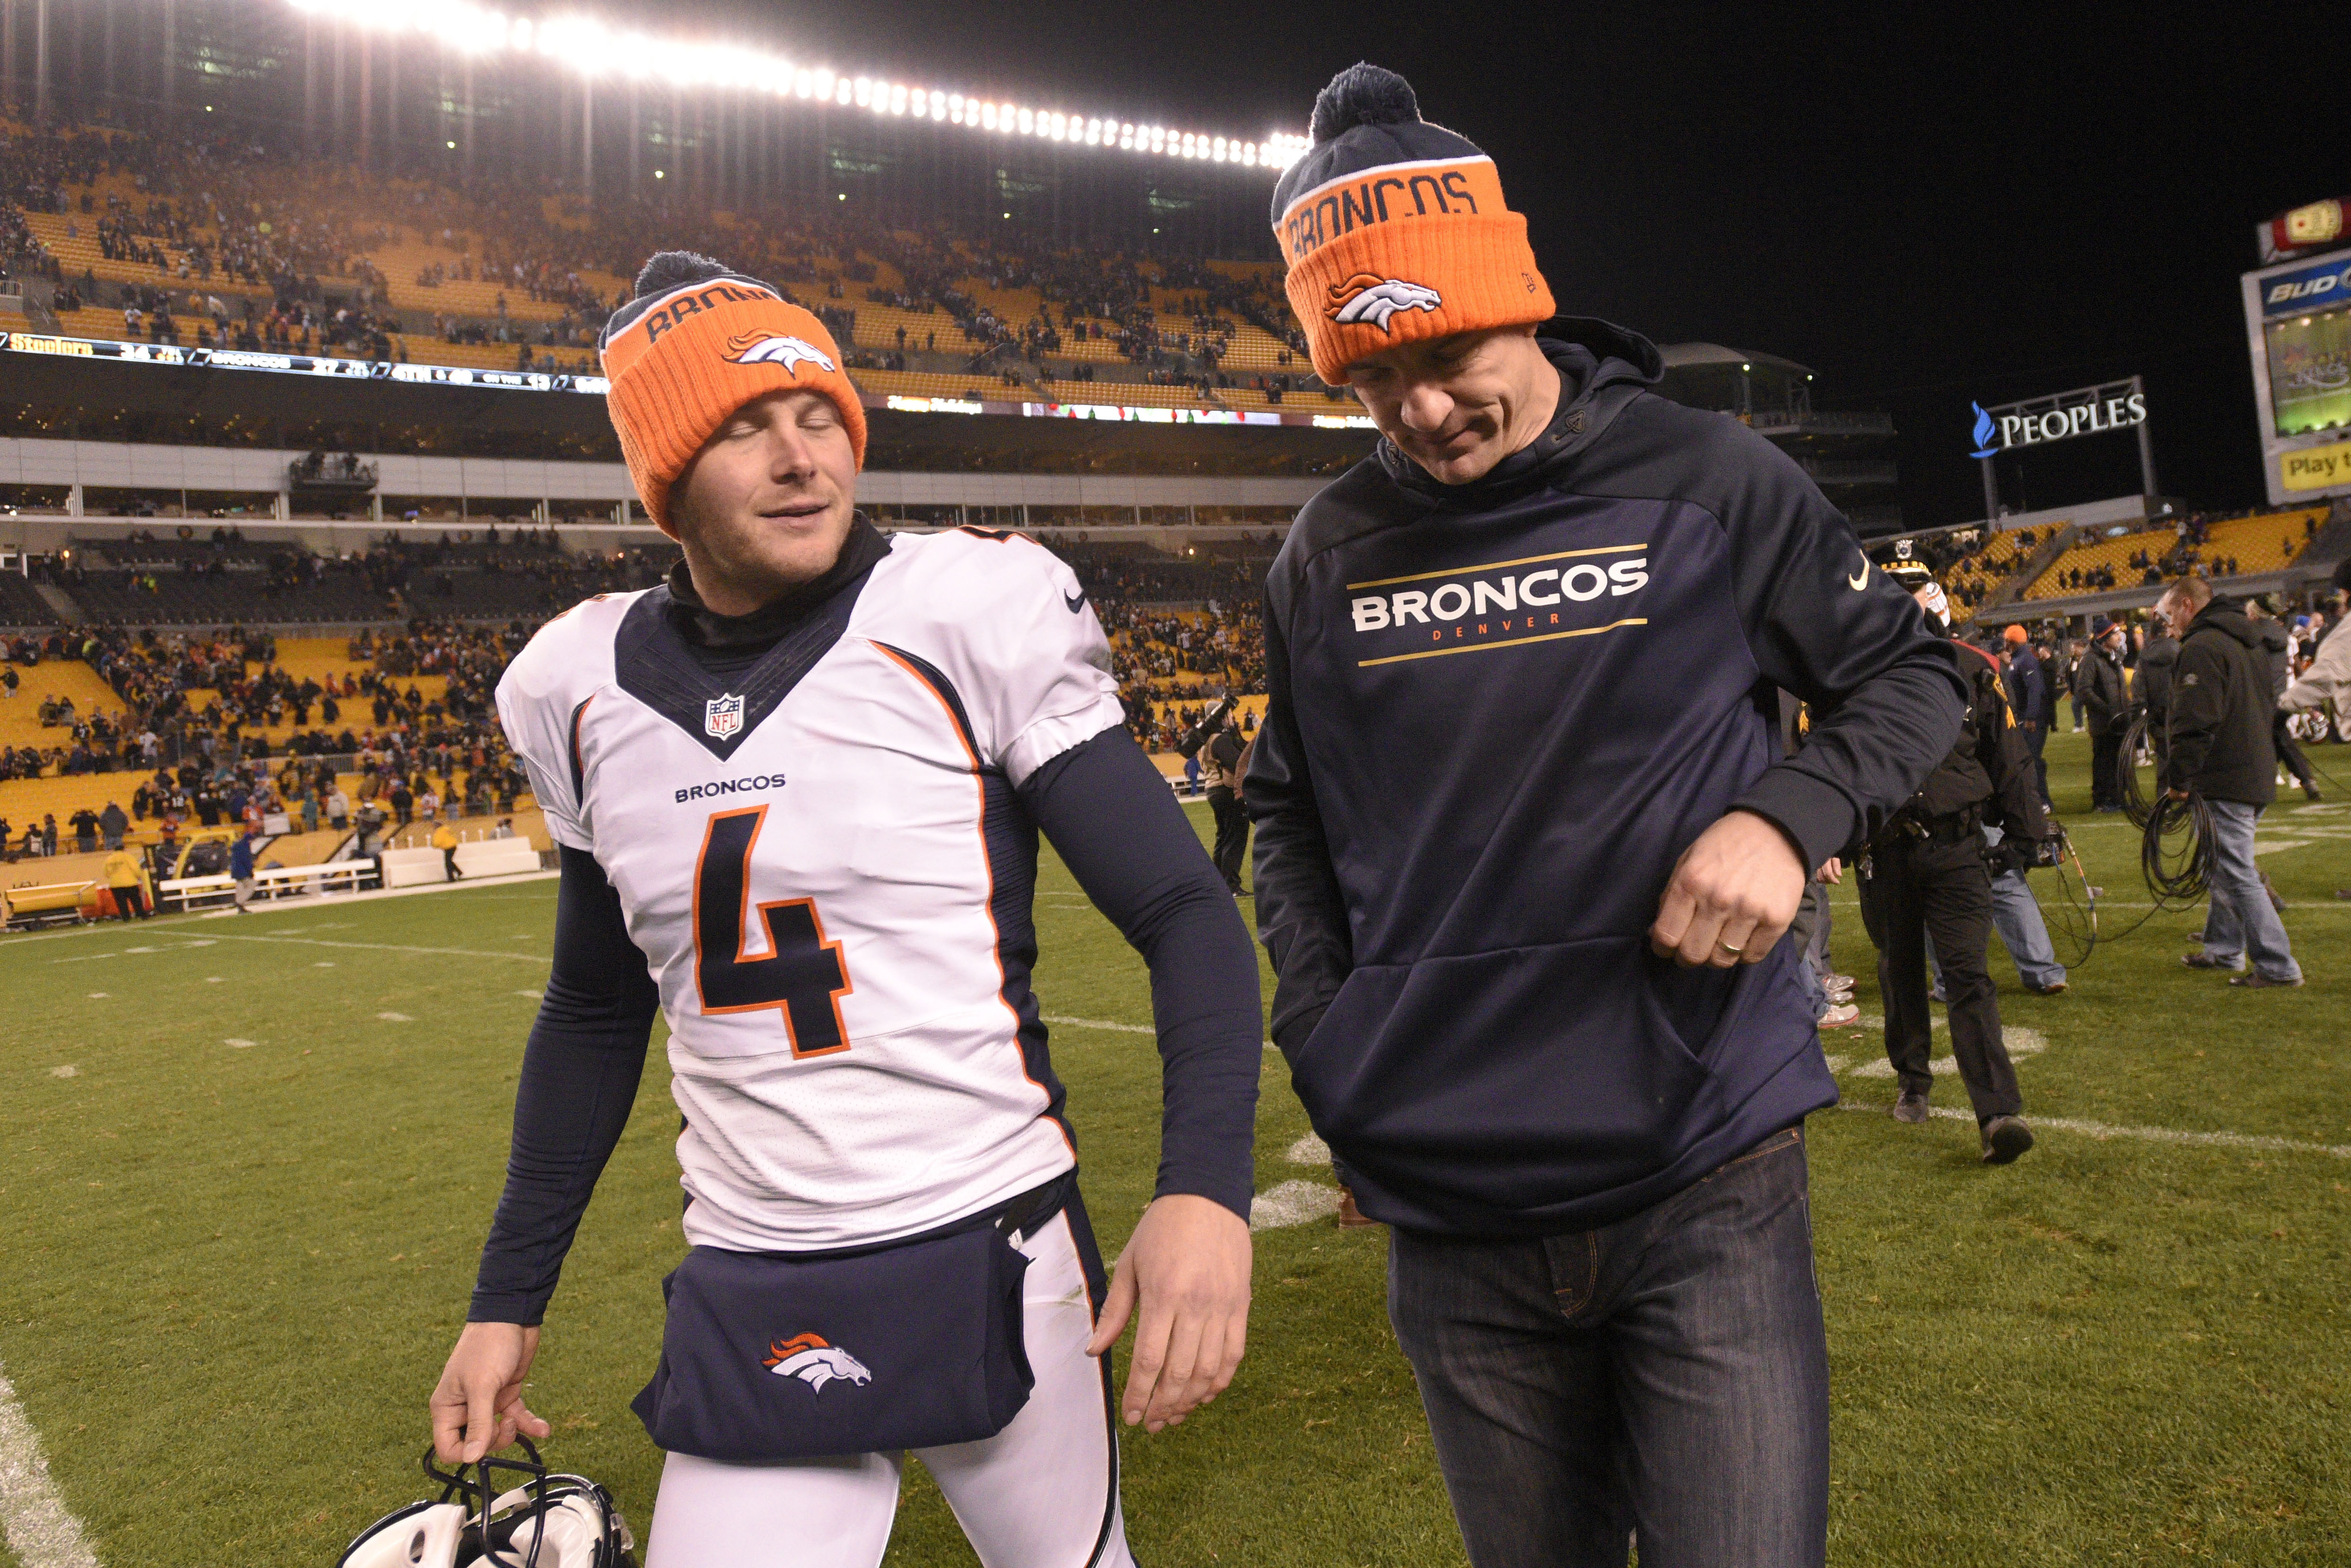 Denver Broncos punter Britton Colquitt (4) and quarterback Peyton Manning (18) leave the field after an NFL football game against the Pittsburgh Steelers, Sunday, Dec. 20, 2015, in Pittsburgh. The Steelers won 34-27. (AP Photo/Don Wright)